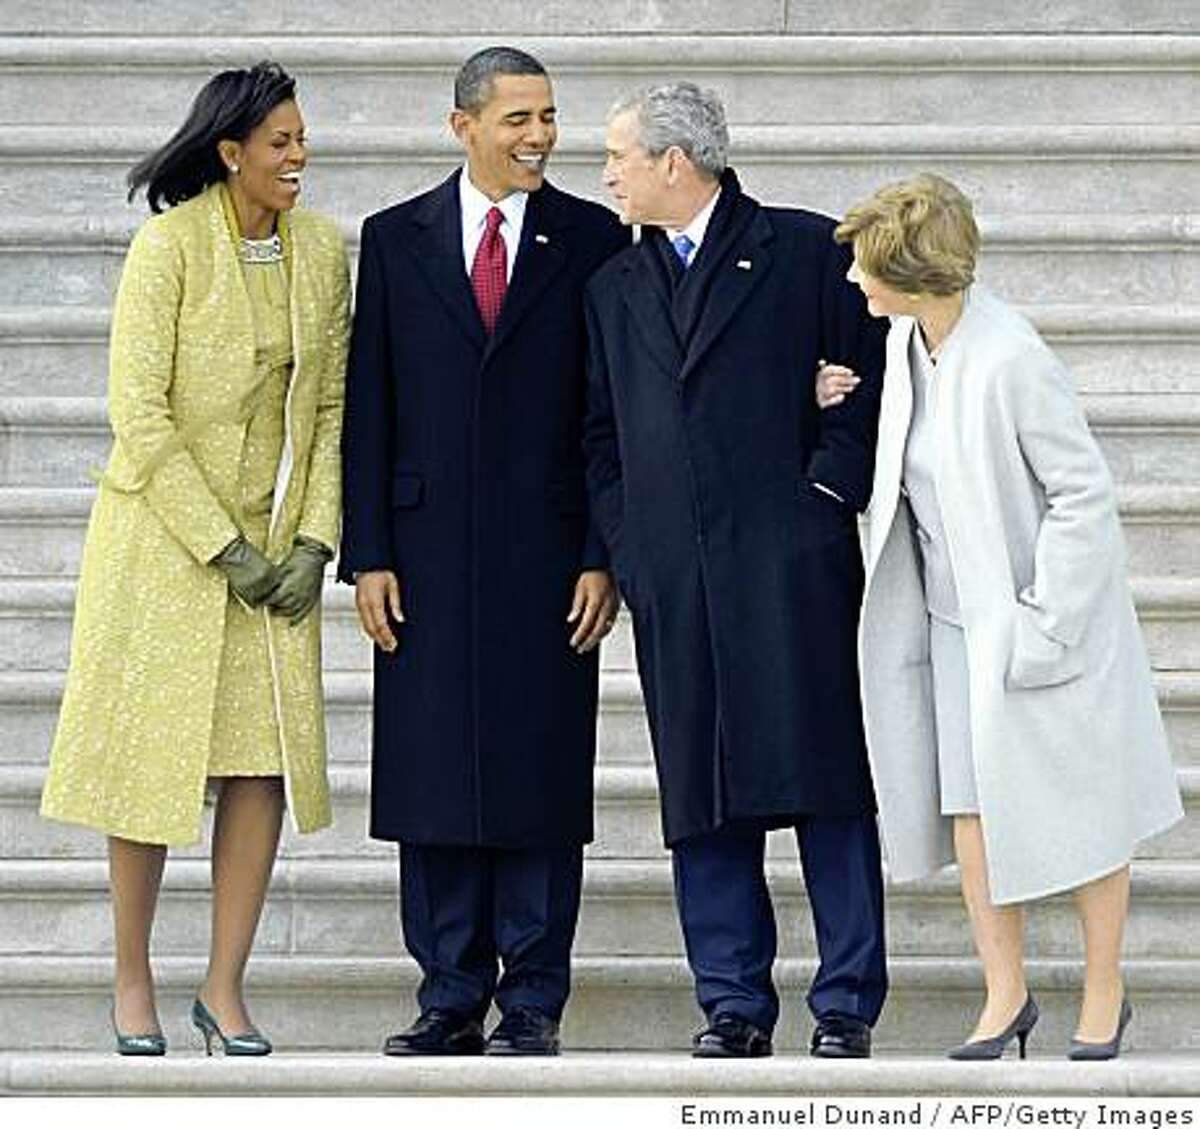 US Presisdent Barack Obama (2nd L), First Lady Michelle Obama (L), former president George W. Bush (2nd R) and former first lady Laura Bush chat on the steps of the Capitol after Obama's Obama's inauguration in Washington on January 20, 2009. AFP PHOTO/Emmanuel Dunand (Photo credit should read EMMANUEL DUNAND/AFP/Getty Images)